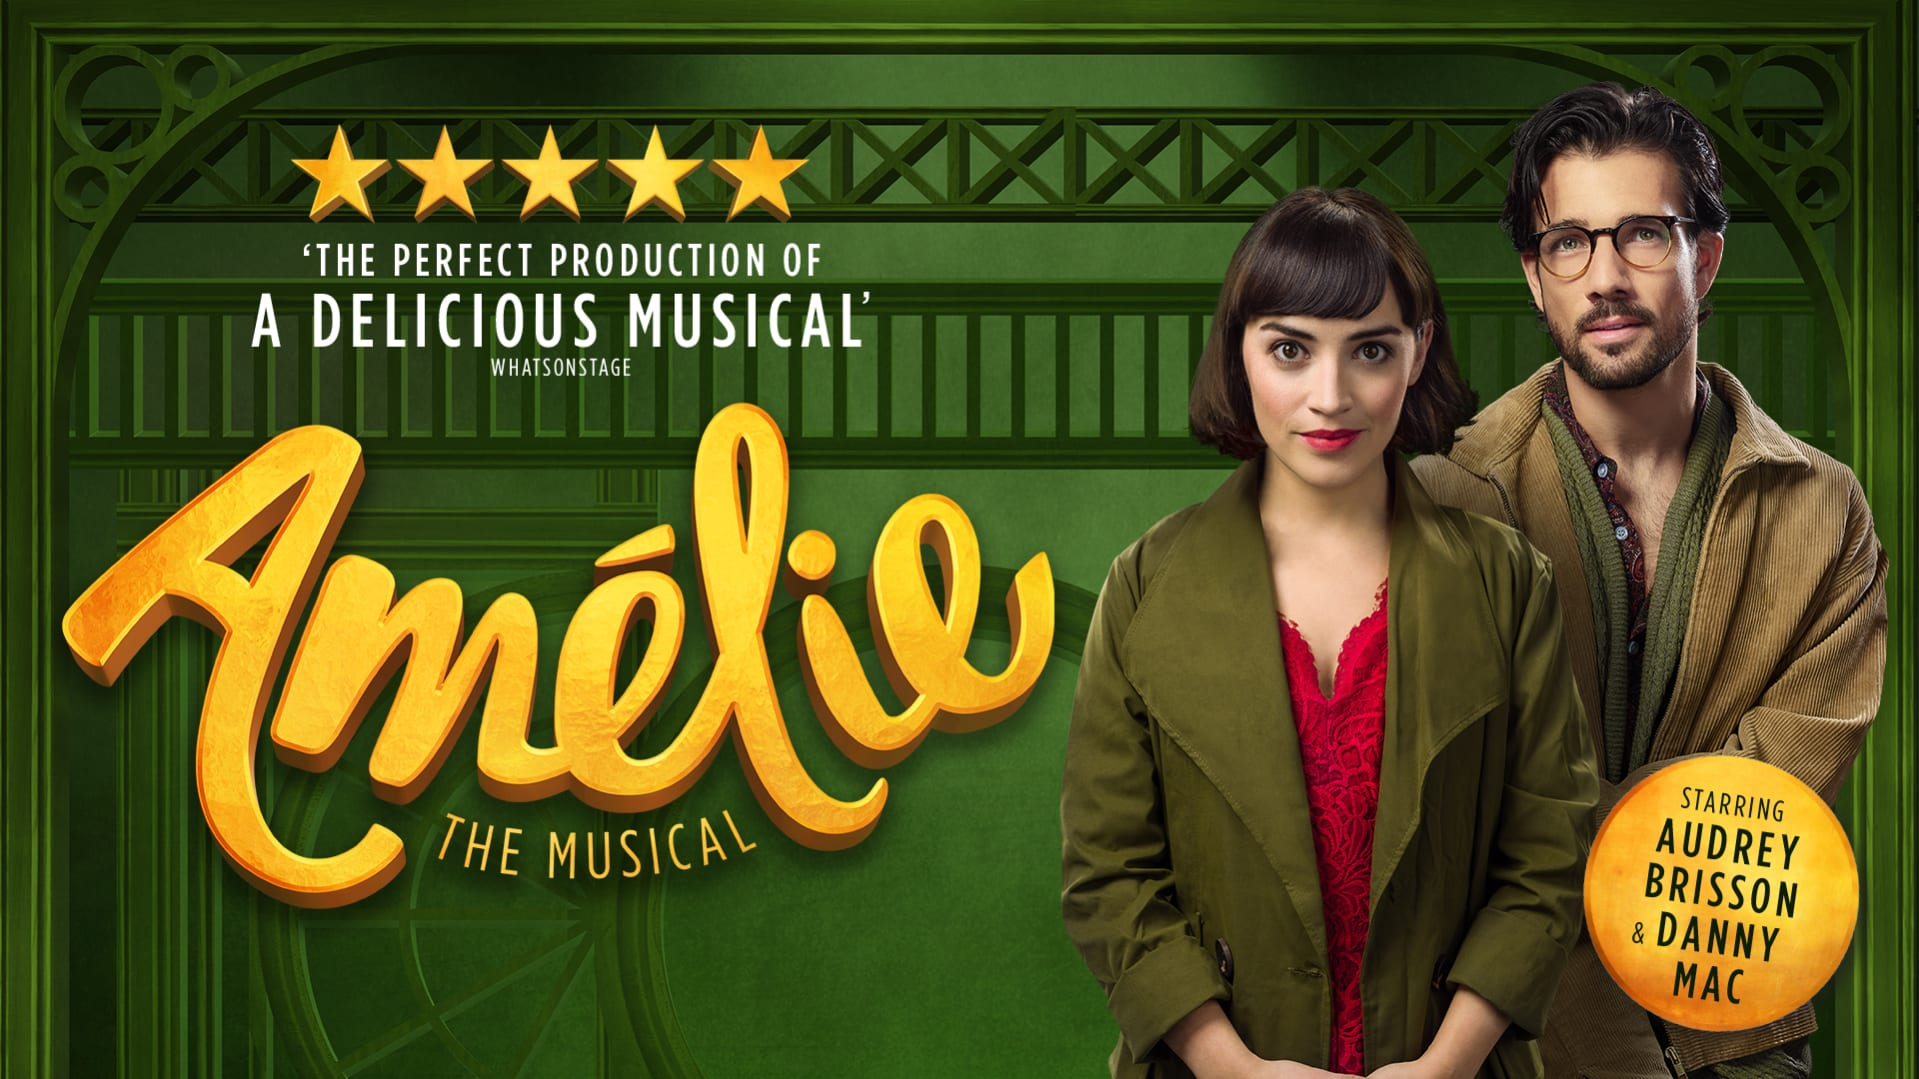 amelie the musical audrey brisson danny mac not just a tit lifestyle blogger theatre review manchester opera house